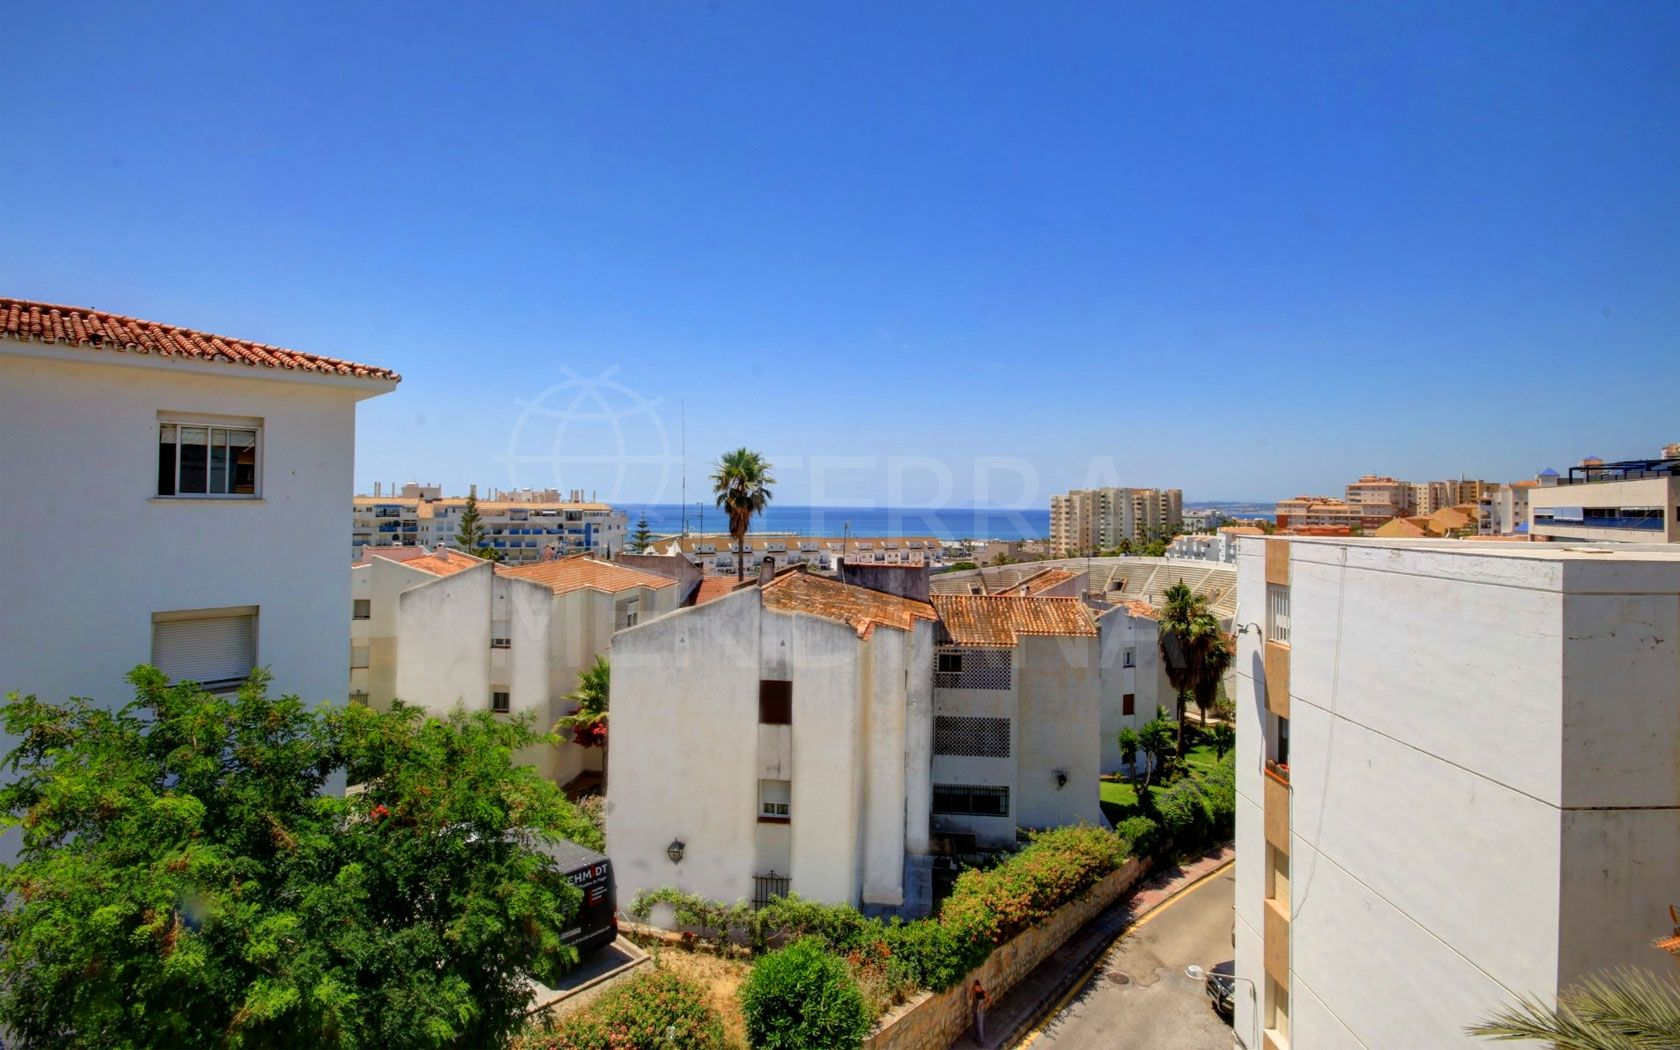 2 bedroom apartment for sale by Estepona Port, with great sea views